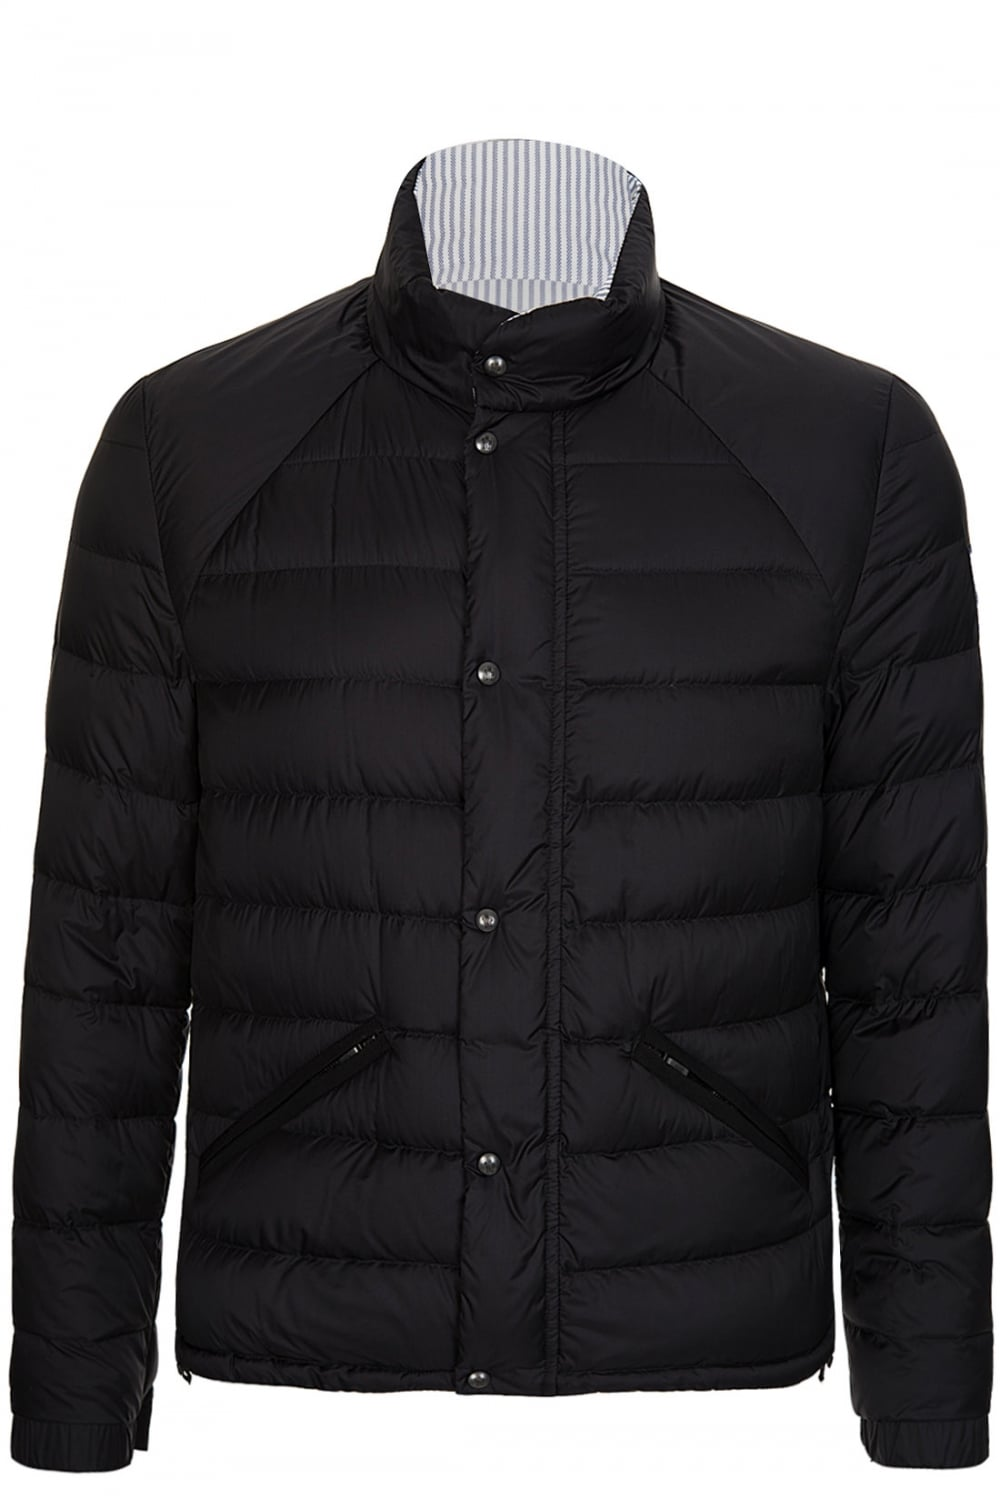 7a73667f02a MONCLER Moncler Gamme Bleu Down Jacket Black - Clothing from Circle ...